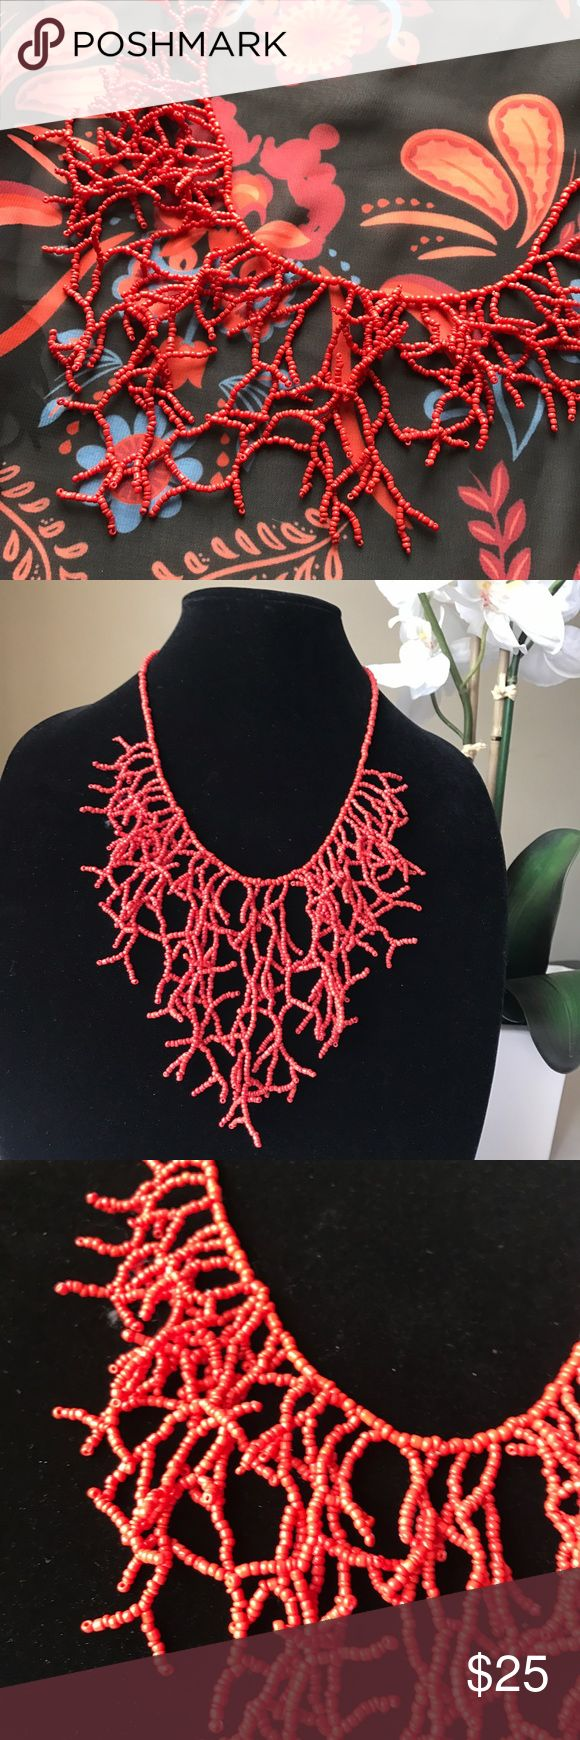 "Beaded ""Coral"" Statement Necklace Vacation in style with this unique bib-style statement necklace. Inspired by coral, this piece is done in hand sewn beadwork. Measures approximately 18"" long with a 2"" extension. Drop is approximately 4 1/2"" at longest point. Jewelry Necklaces"